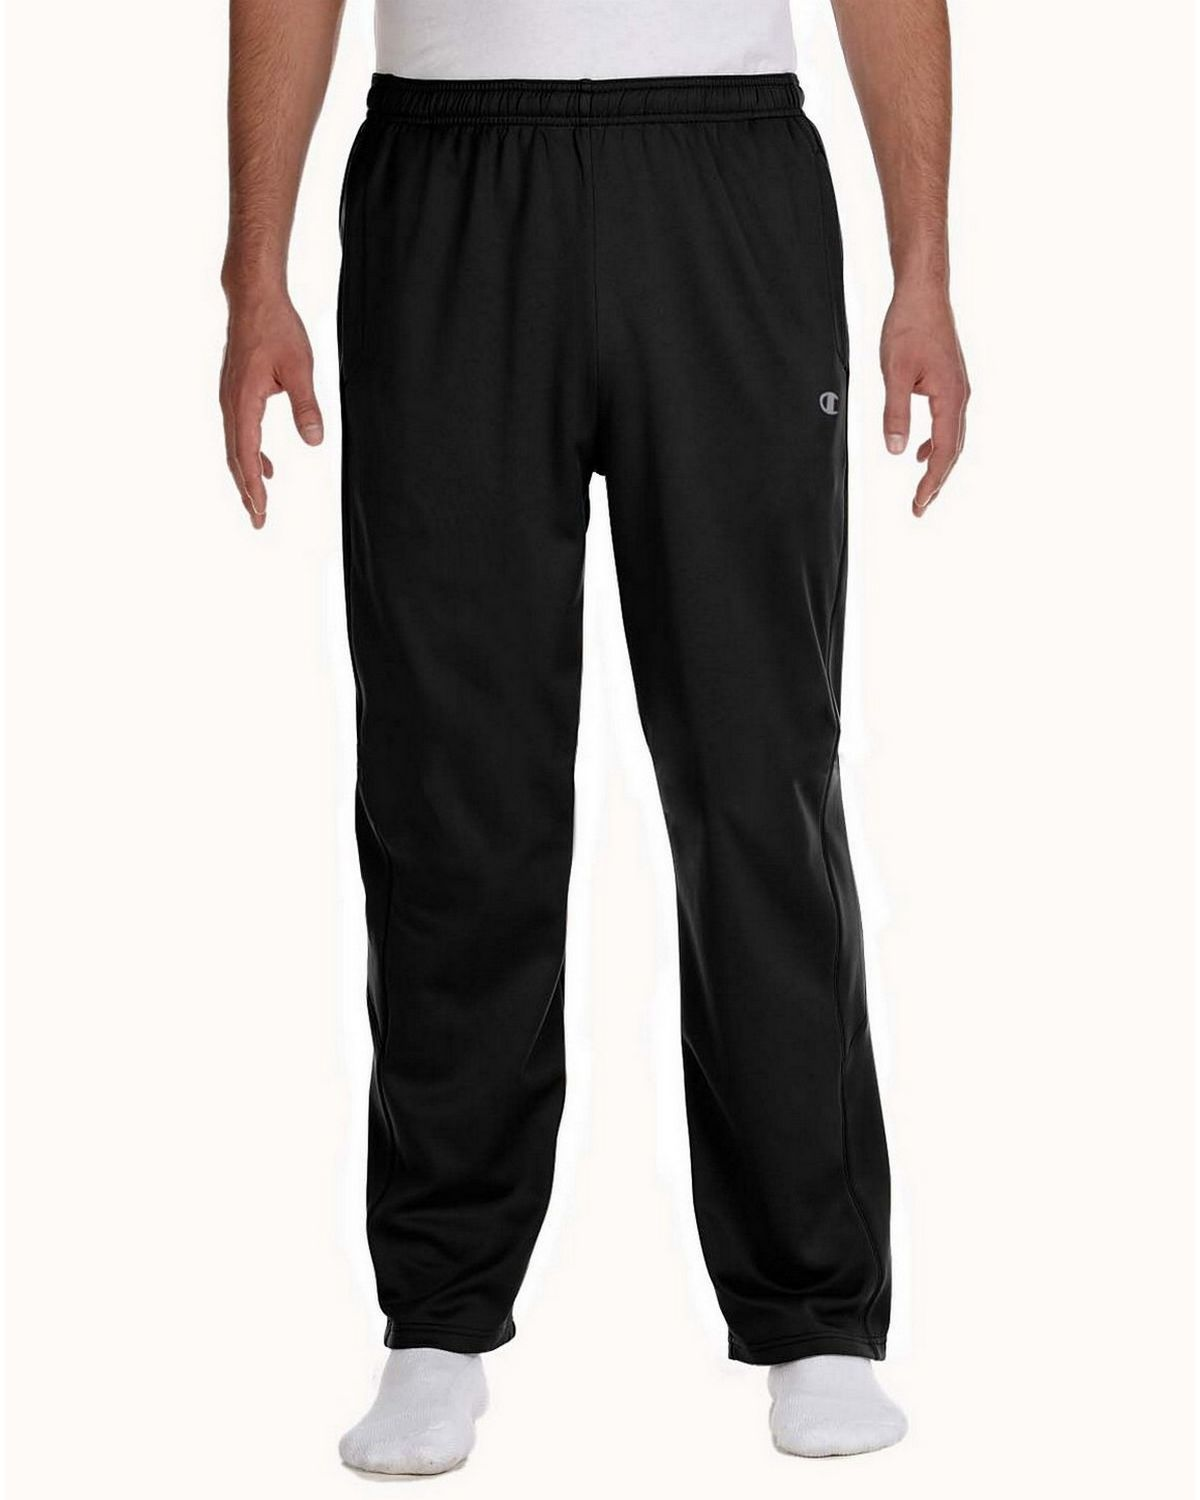 Champion S280 Performance Pants - Black - M S280